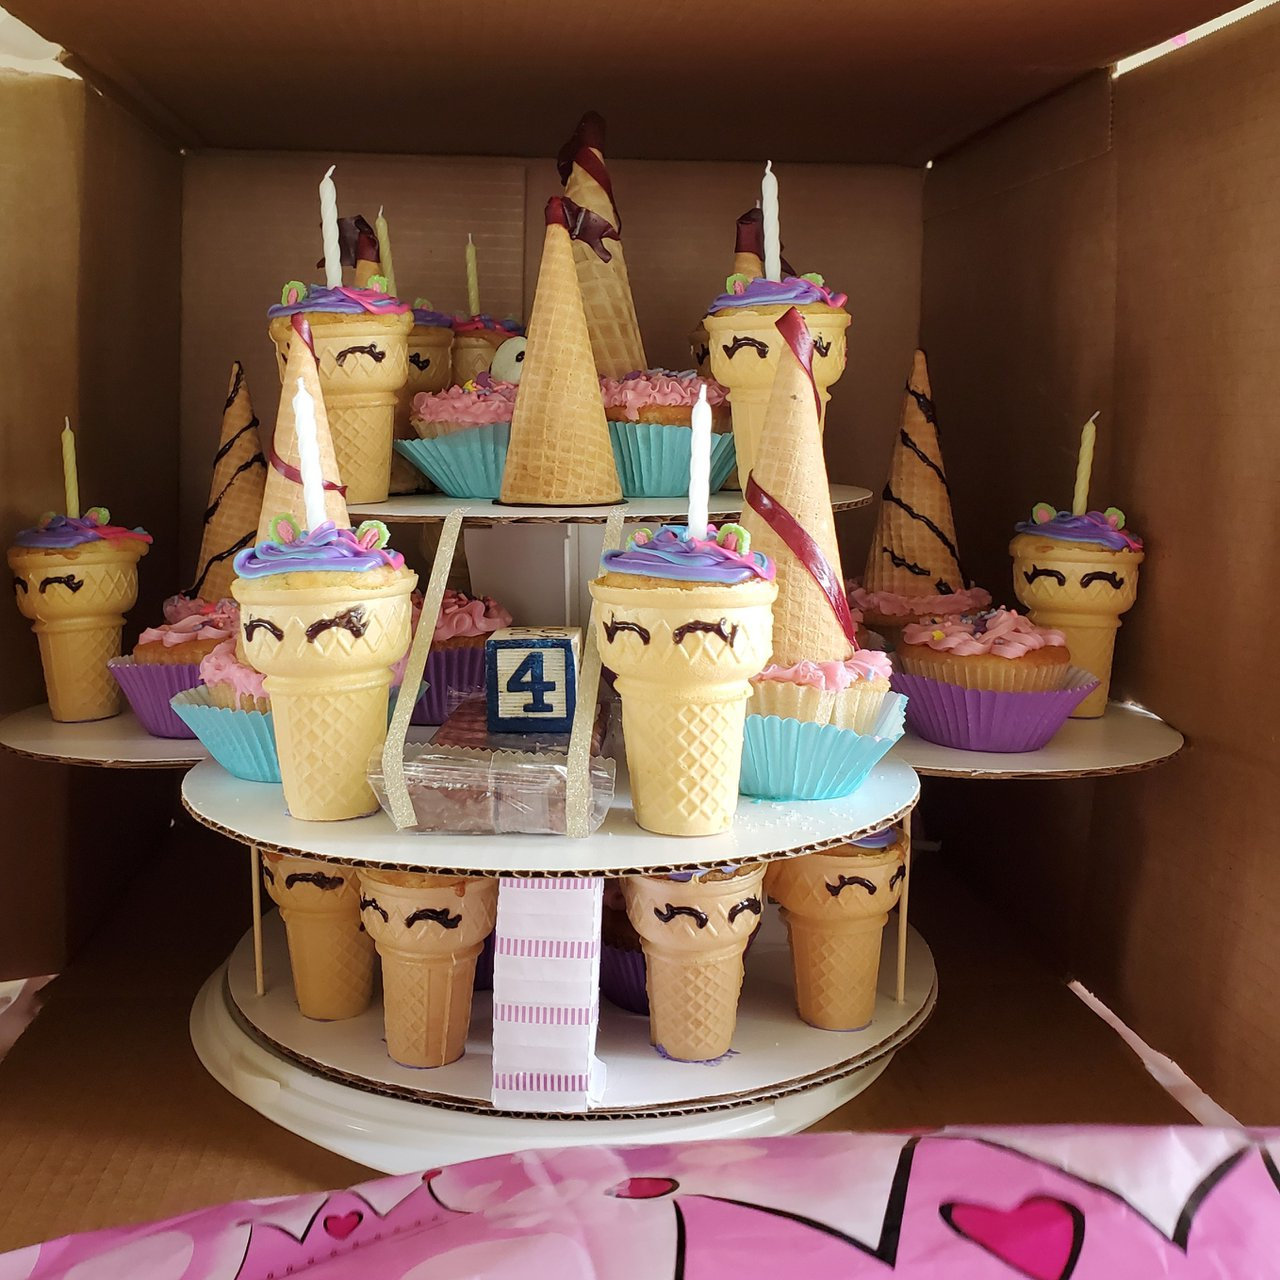 Princess & unicorns birthday  photo 20190825_172723.jpg